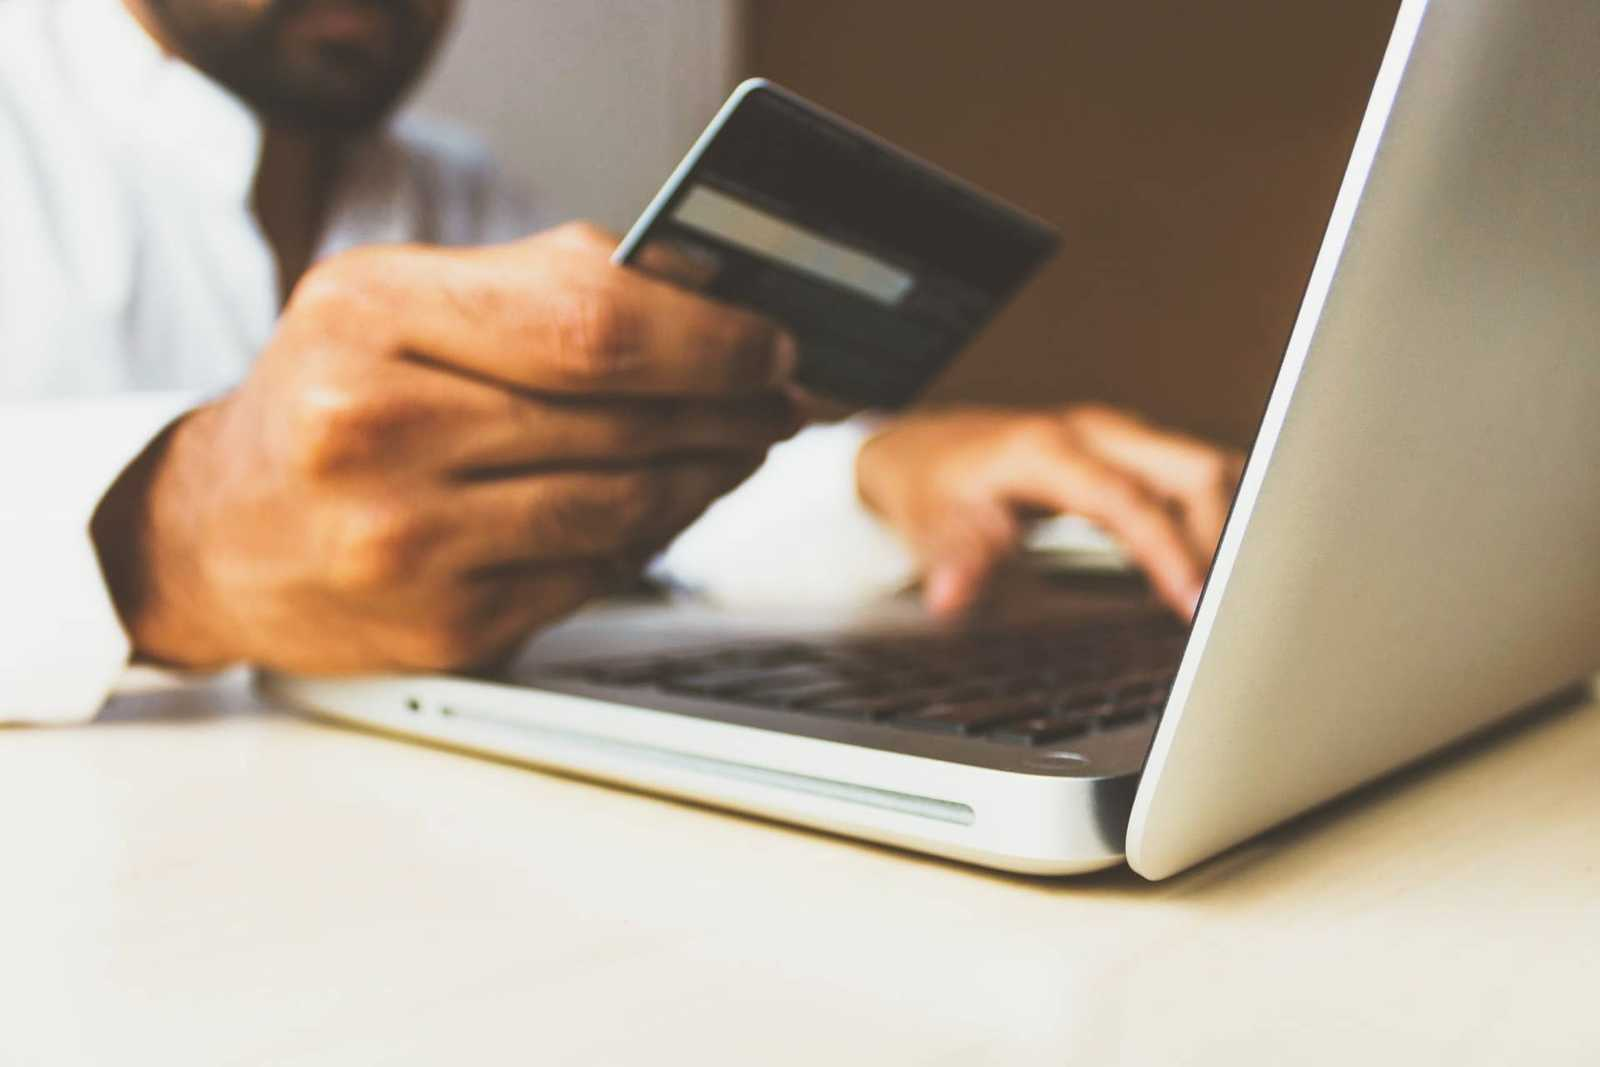 a closeup of a man's hand holding a credit card, presumably making an online purchase